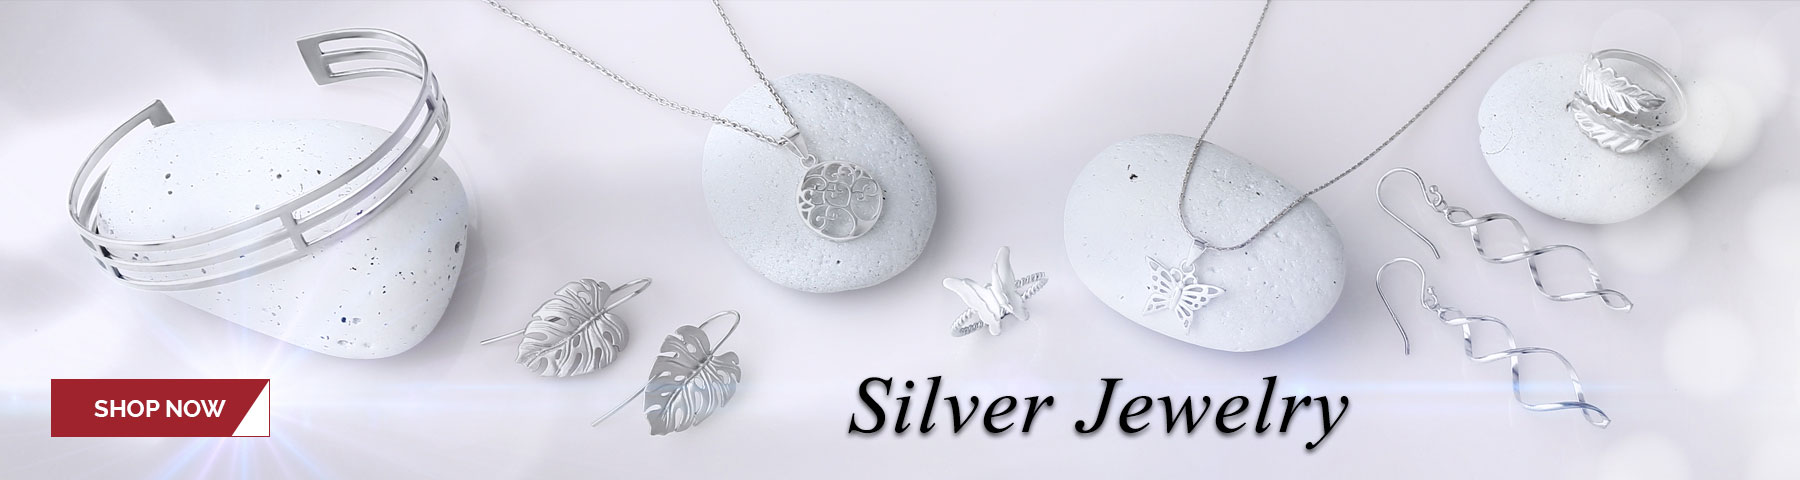 Silver Jewelry: Shop our range of silver jewelry